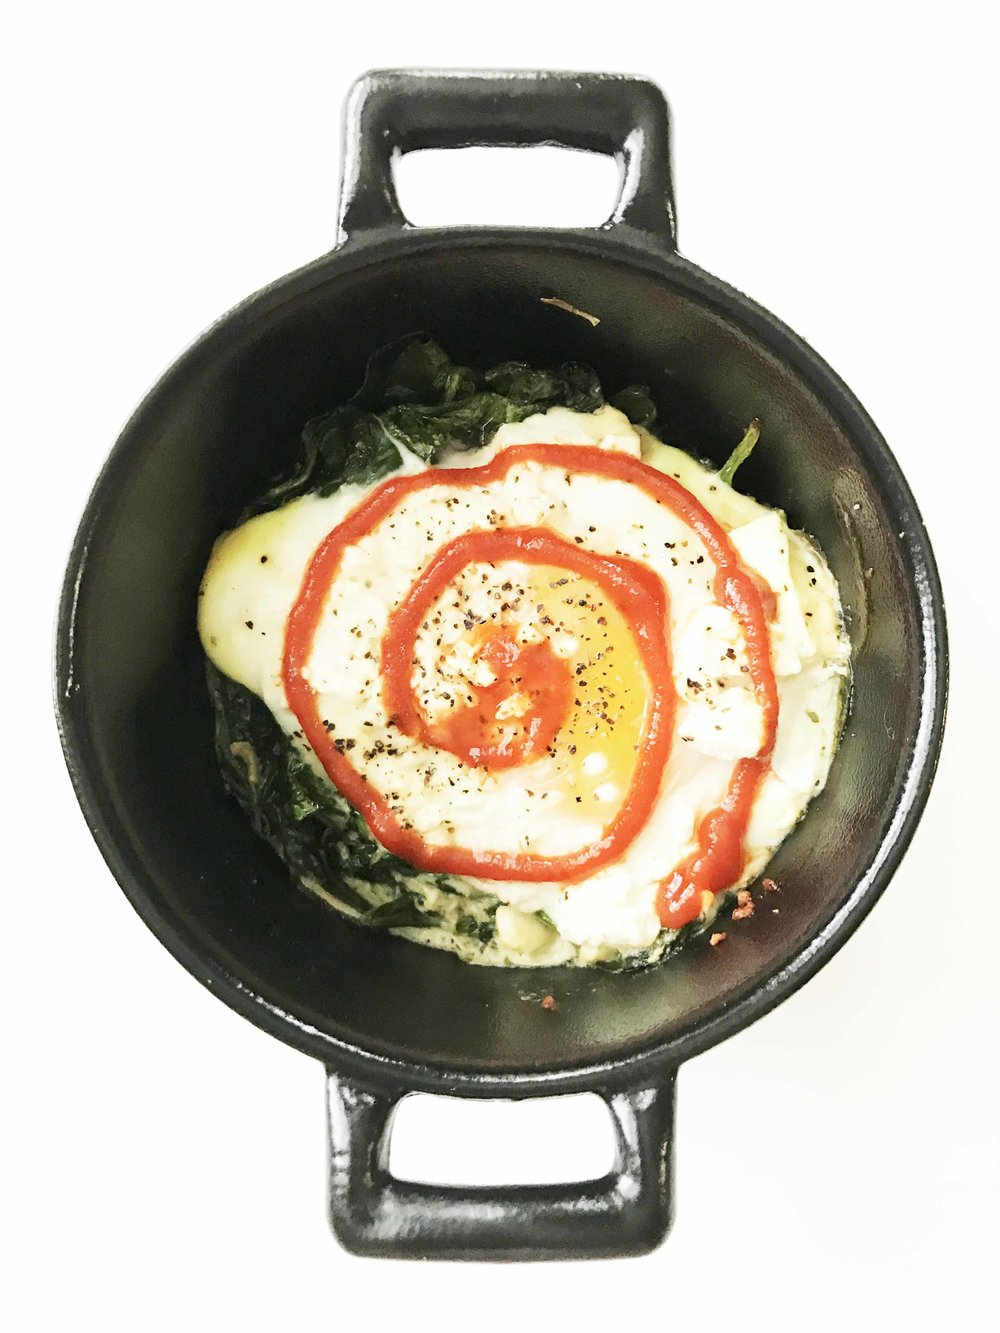 baked-spinach-eggs6.jpg